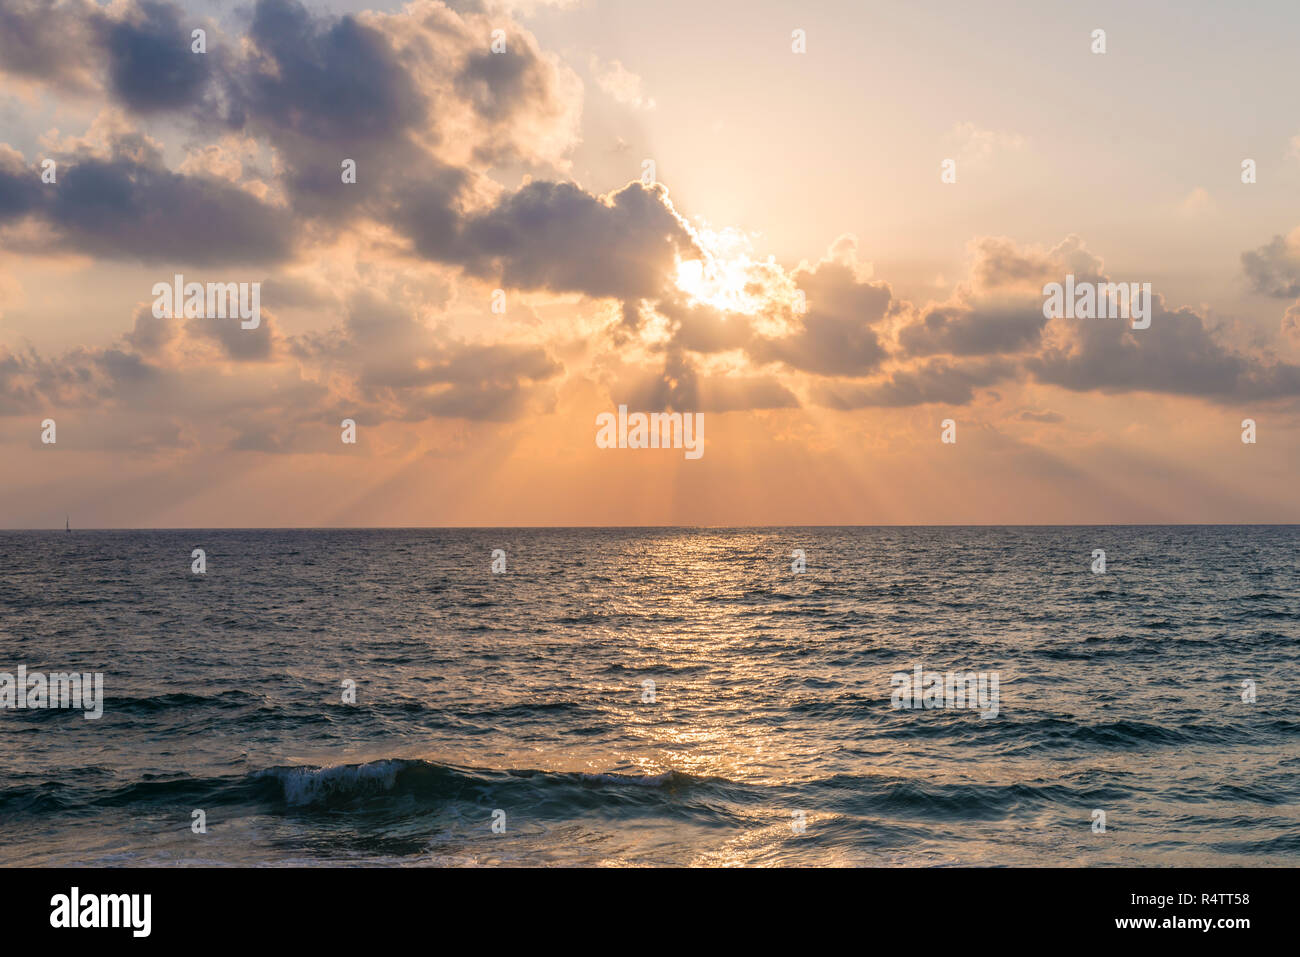 Sunset over the sea, clouds with sunrays, Tel Aviv, Israel - Stock Image